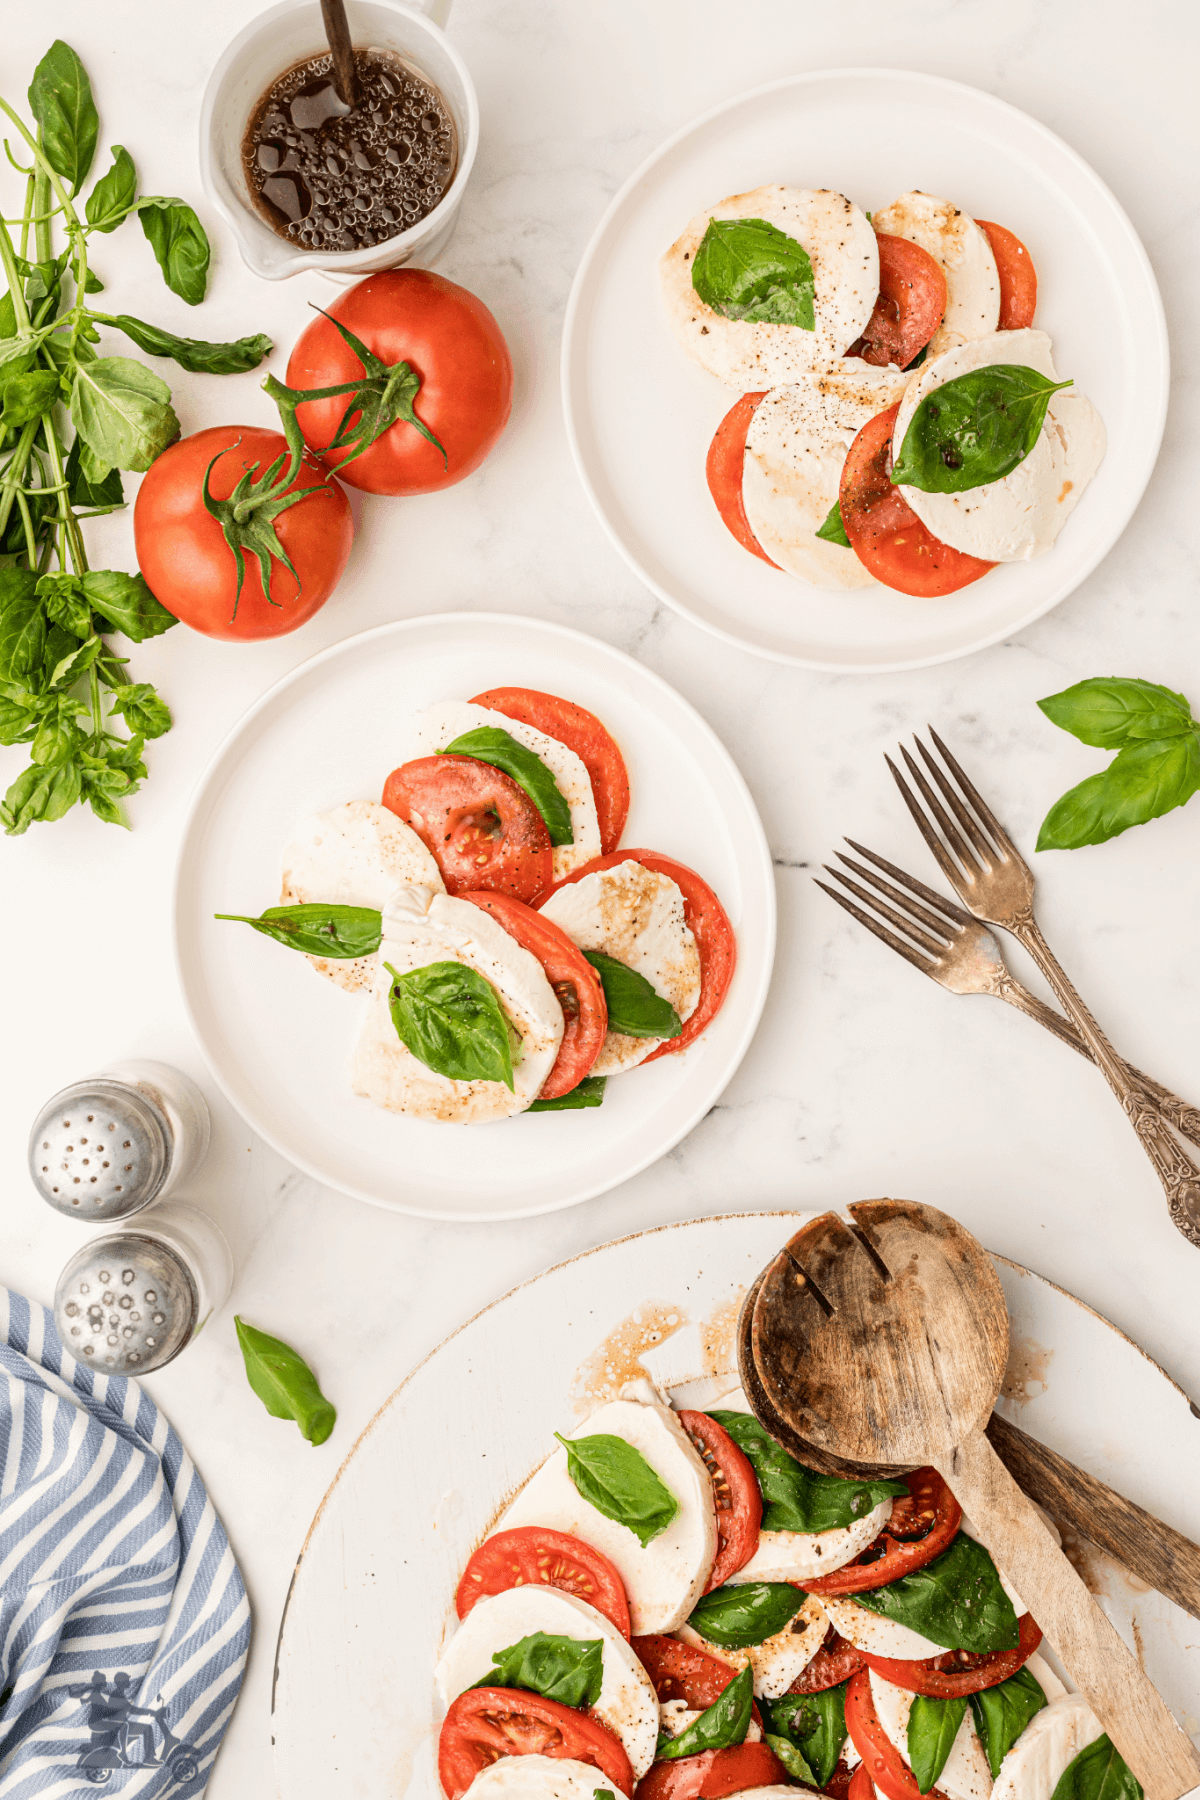 Italian Antipasto Caprese Salad on two salad plates with forks on table ready to eat.